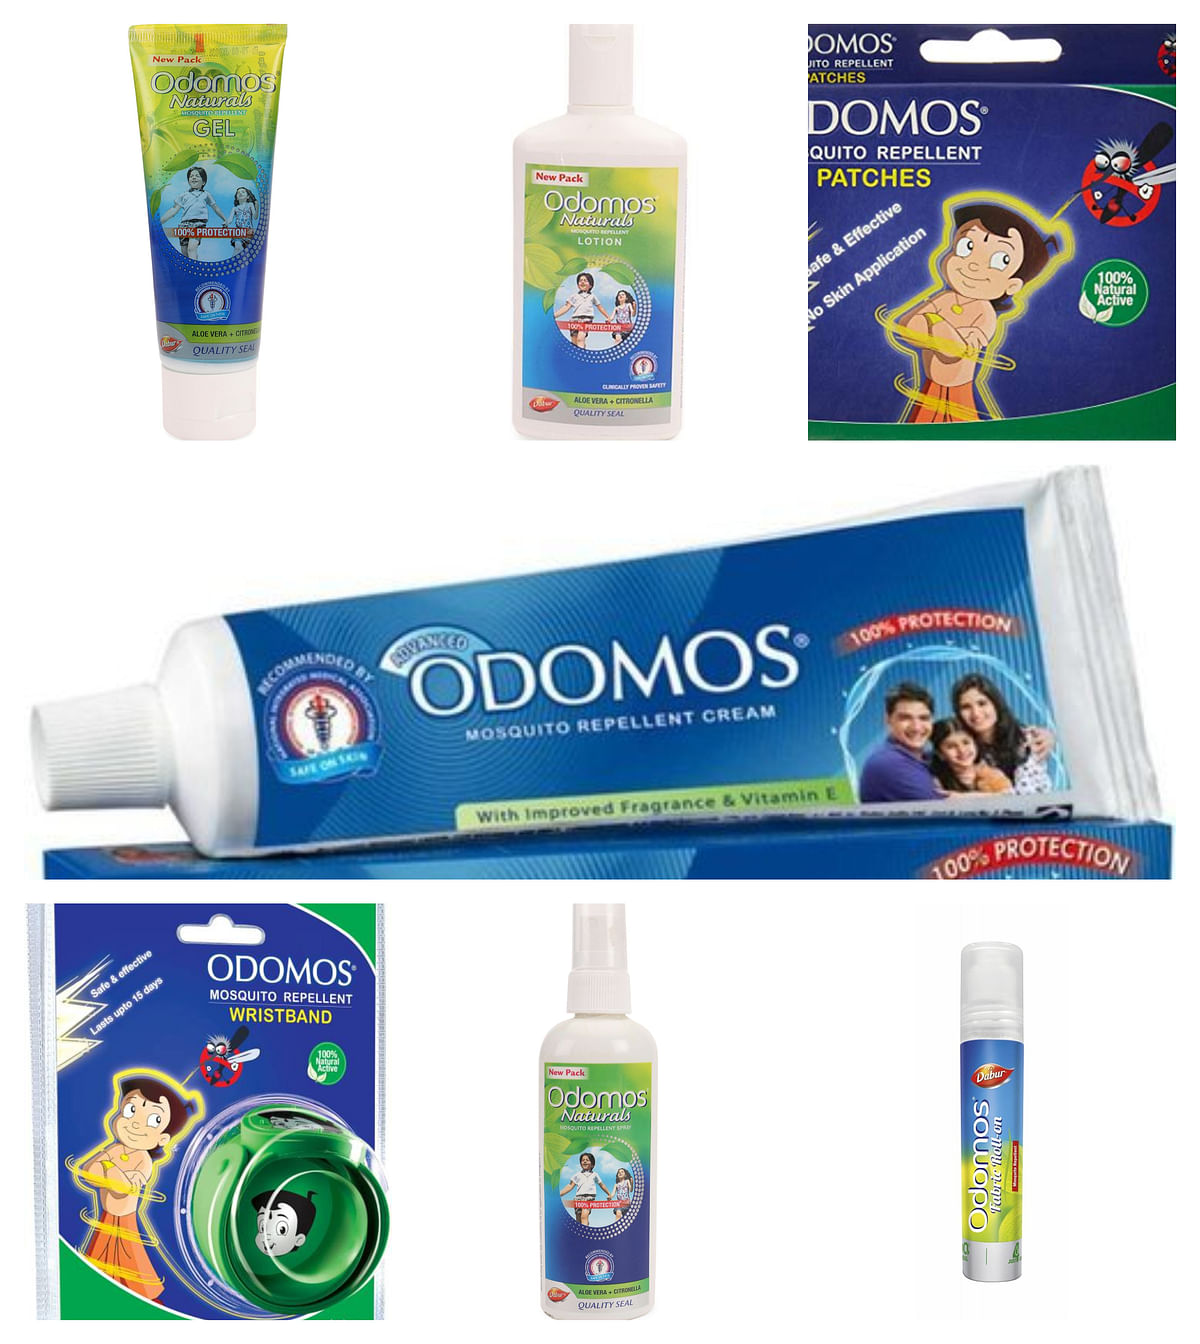 Different formats of Dabur Odomos